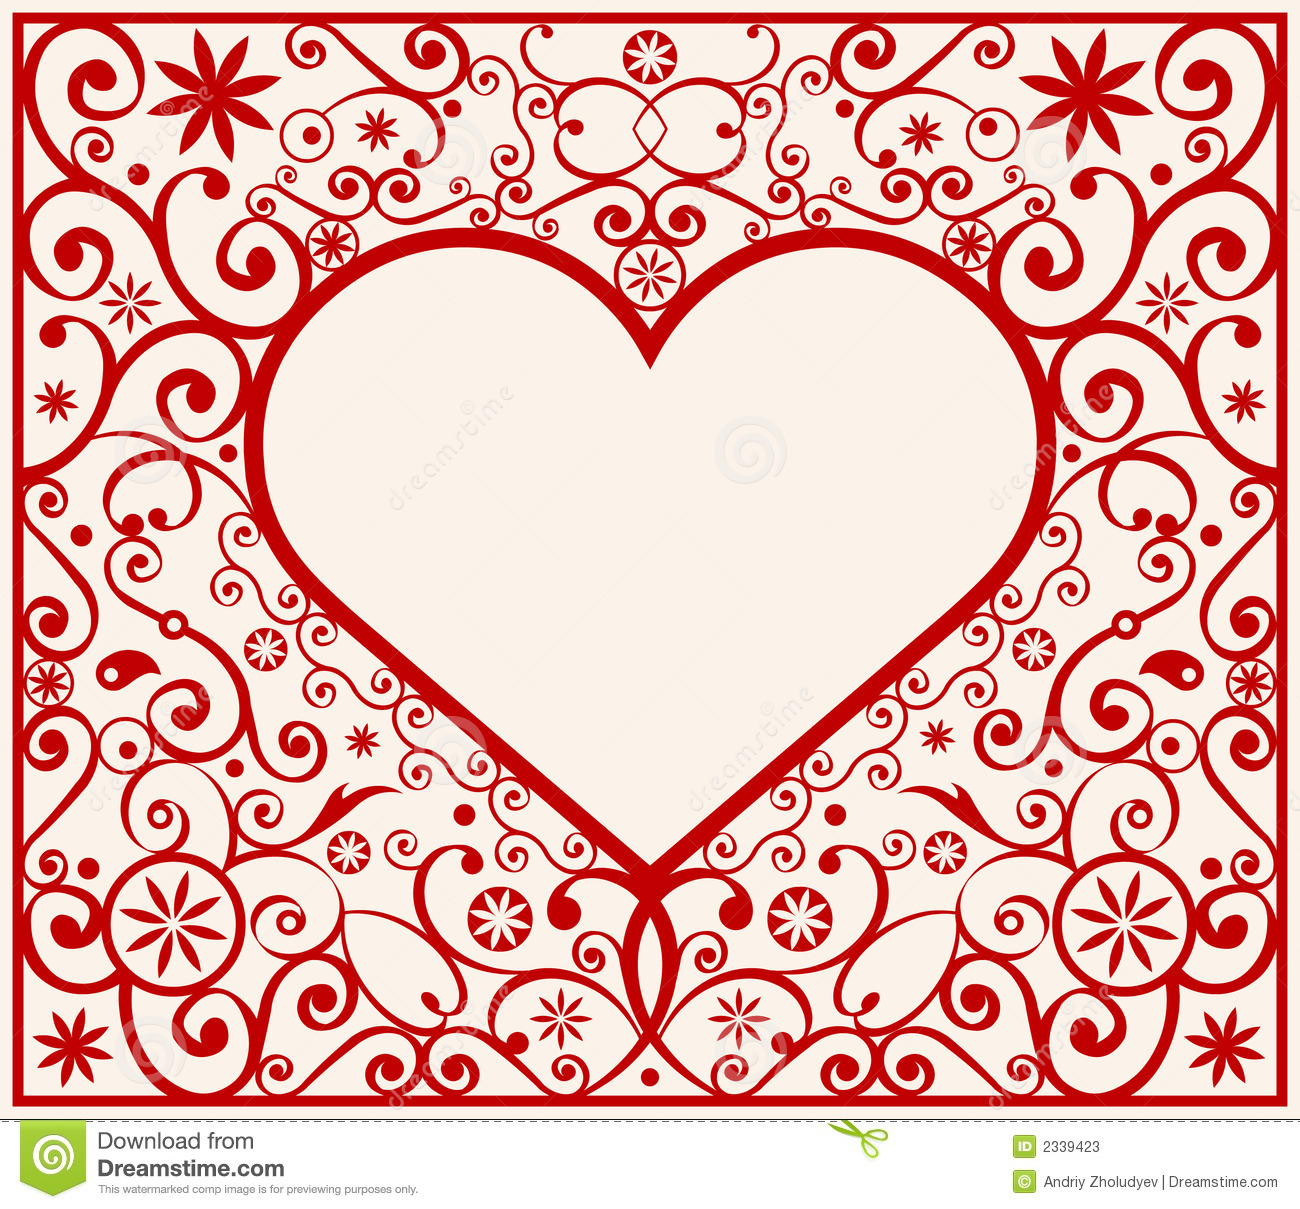 Pattern heart frame stock vector. Illustration of decor - 2339423